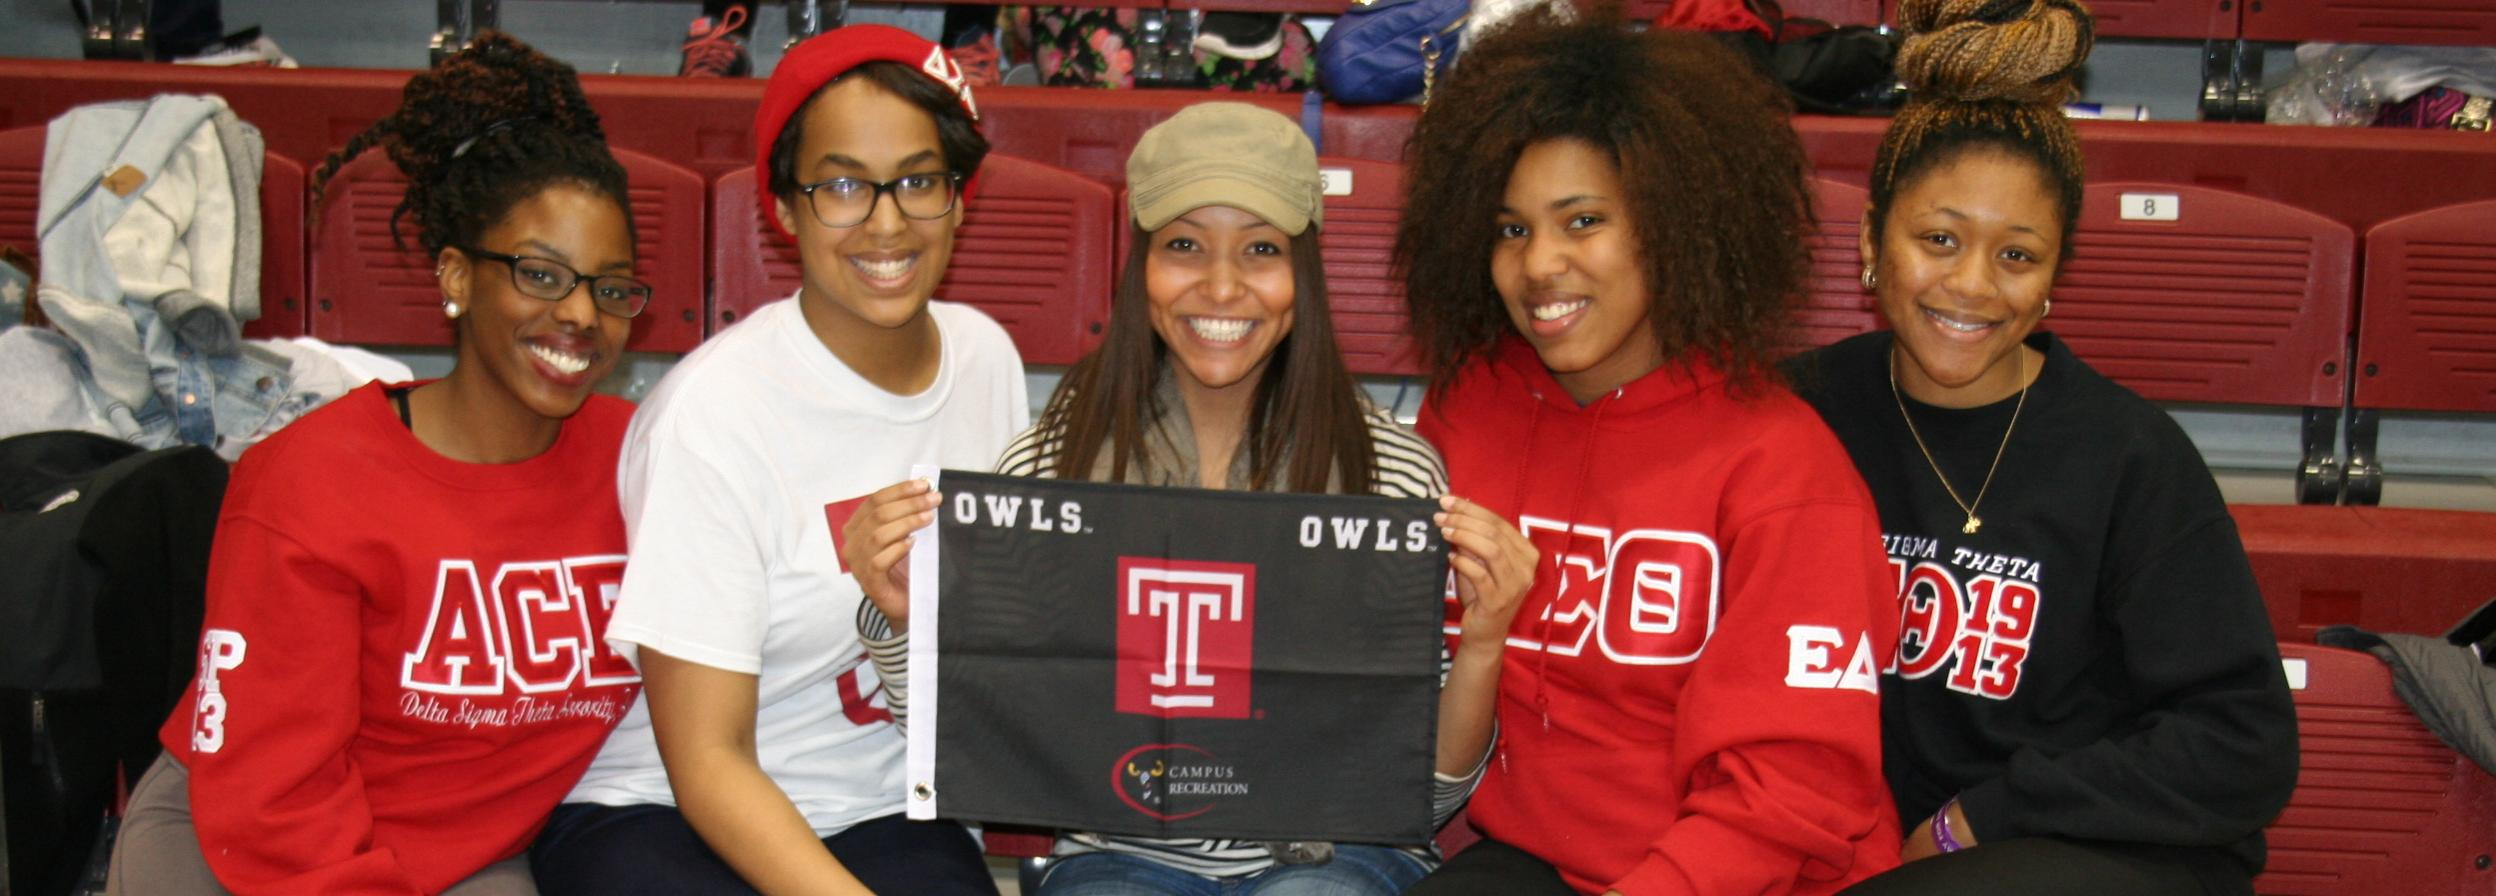 Students holding Campus Rec Flag